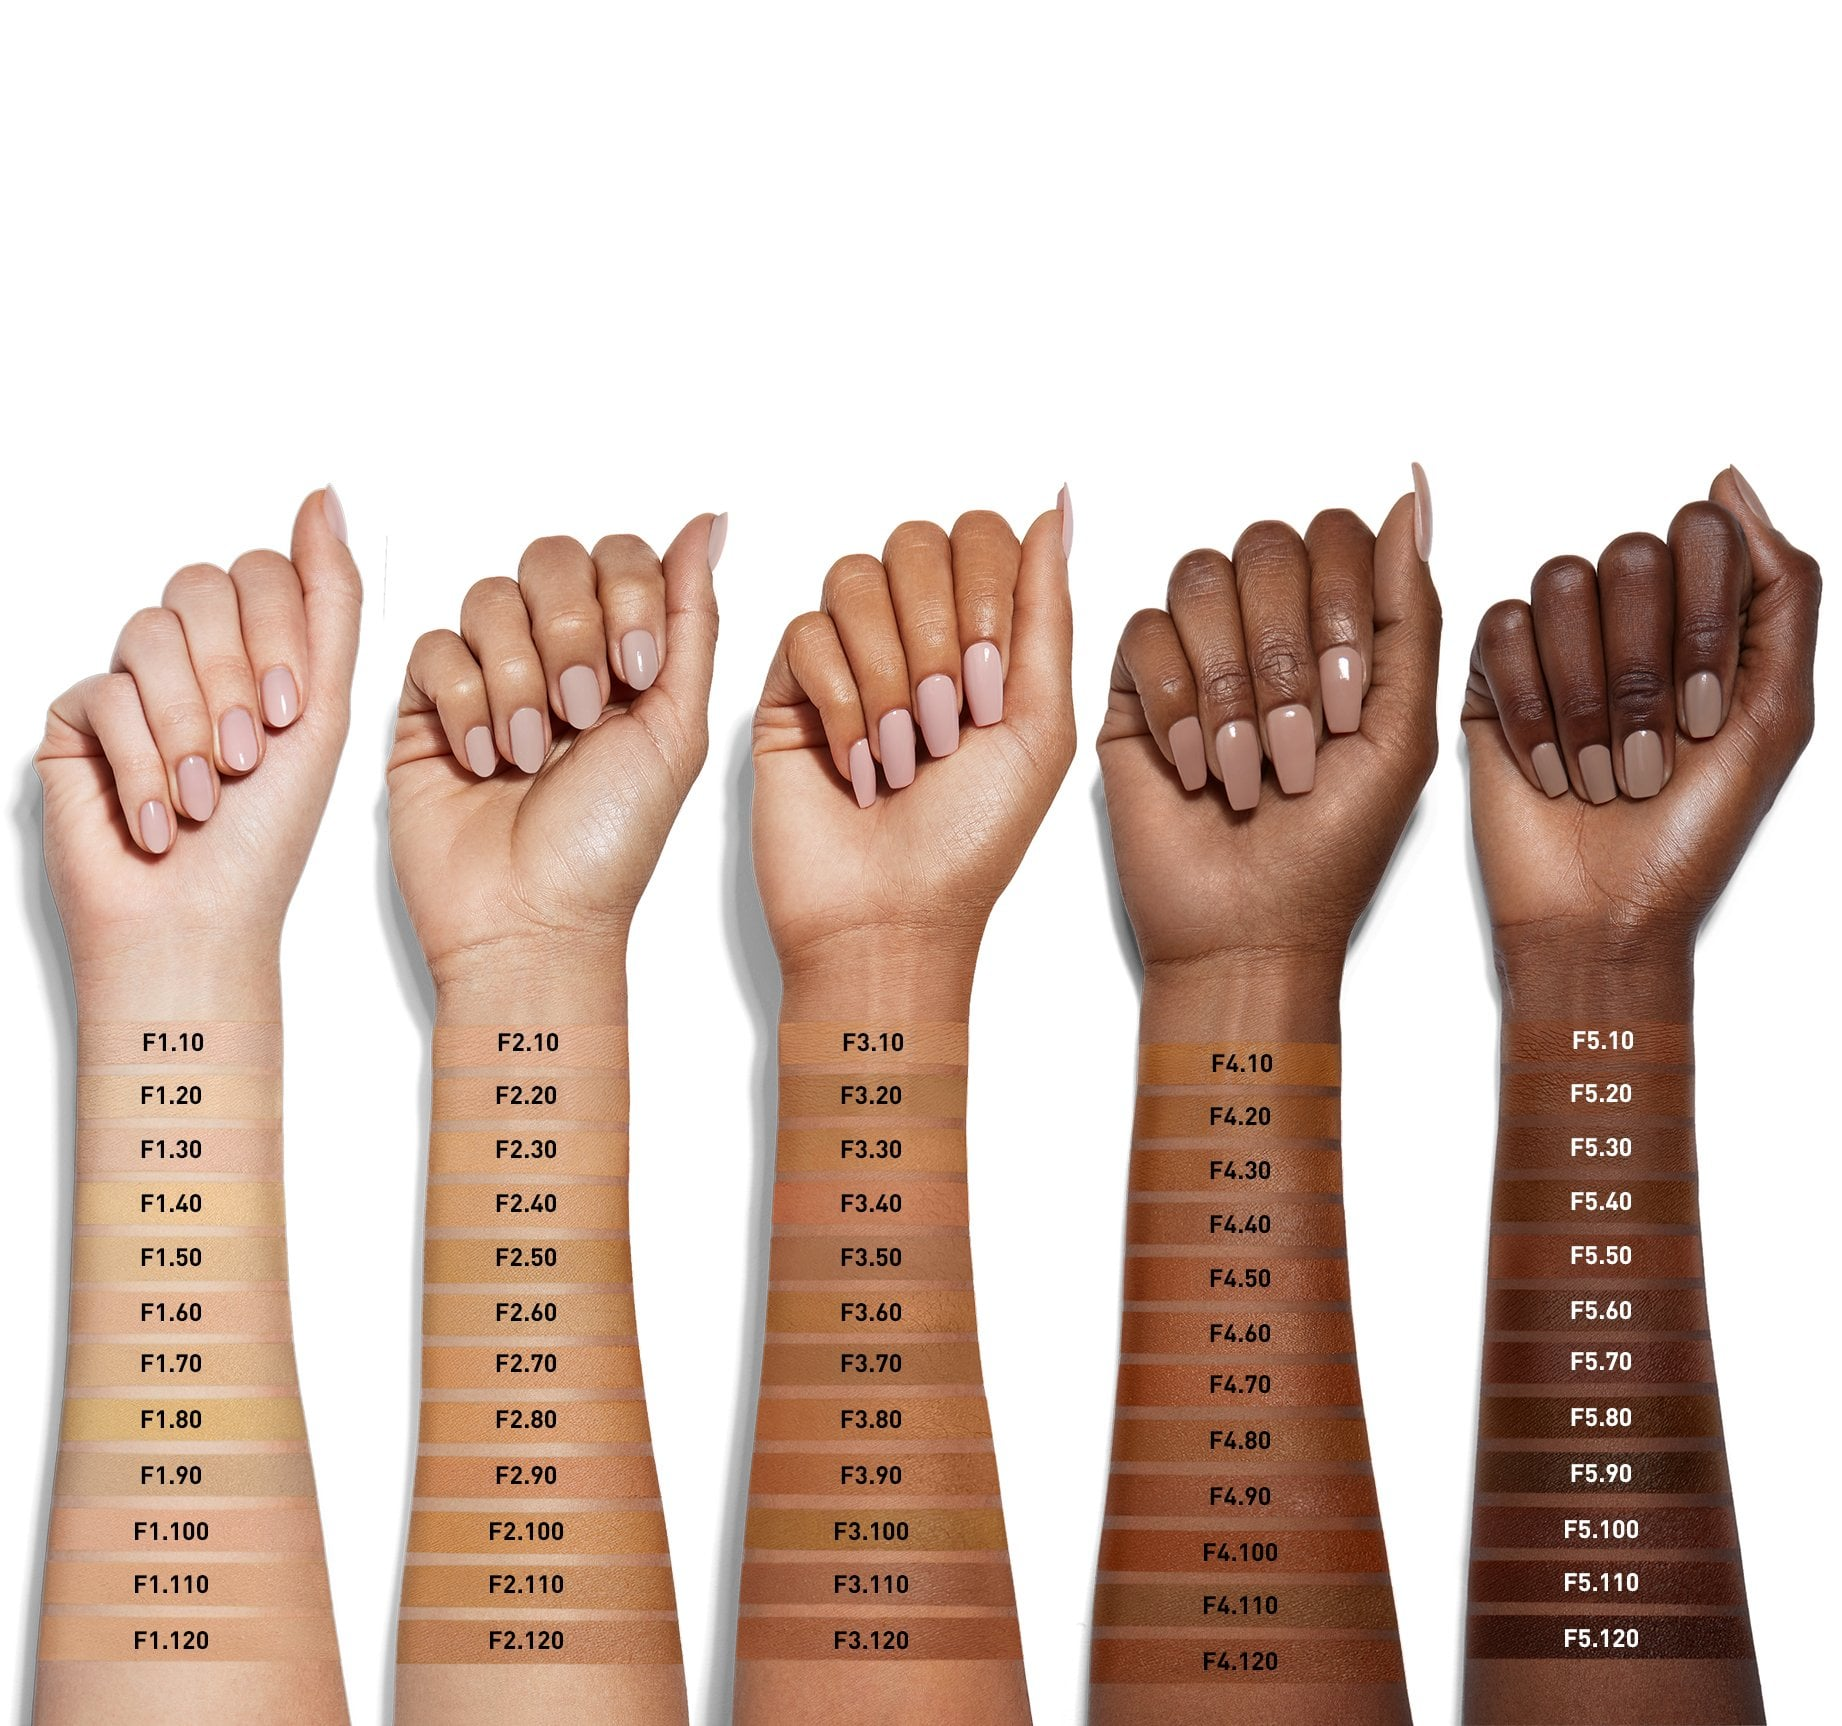 Morphe Fluidity Foundation and Concealer Info, Stockists + More